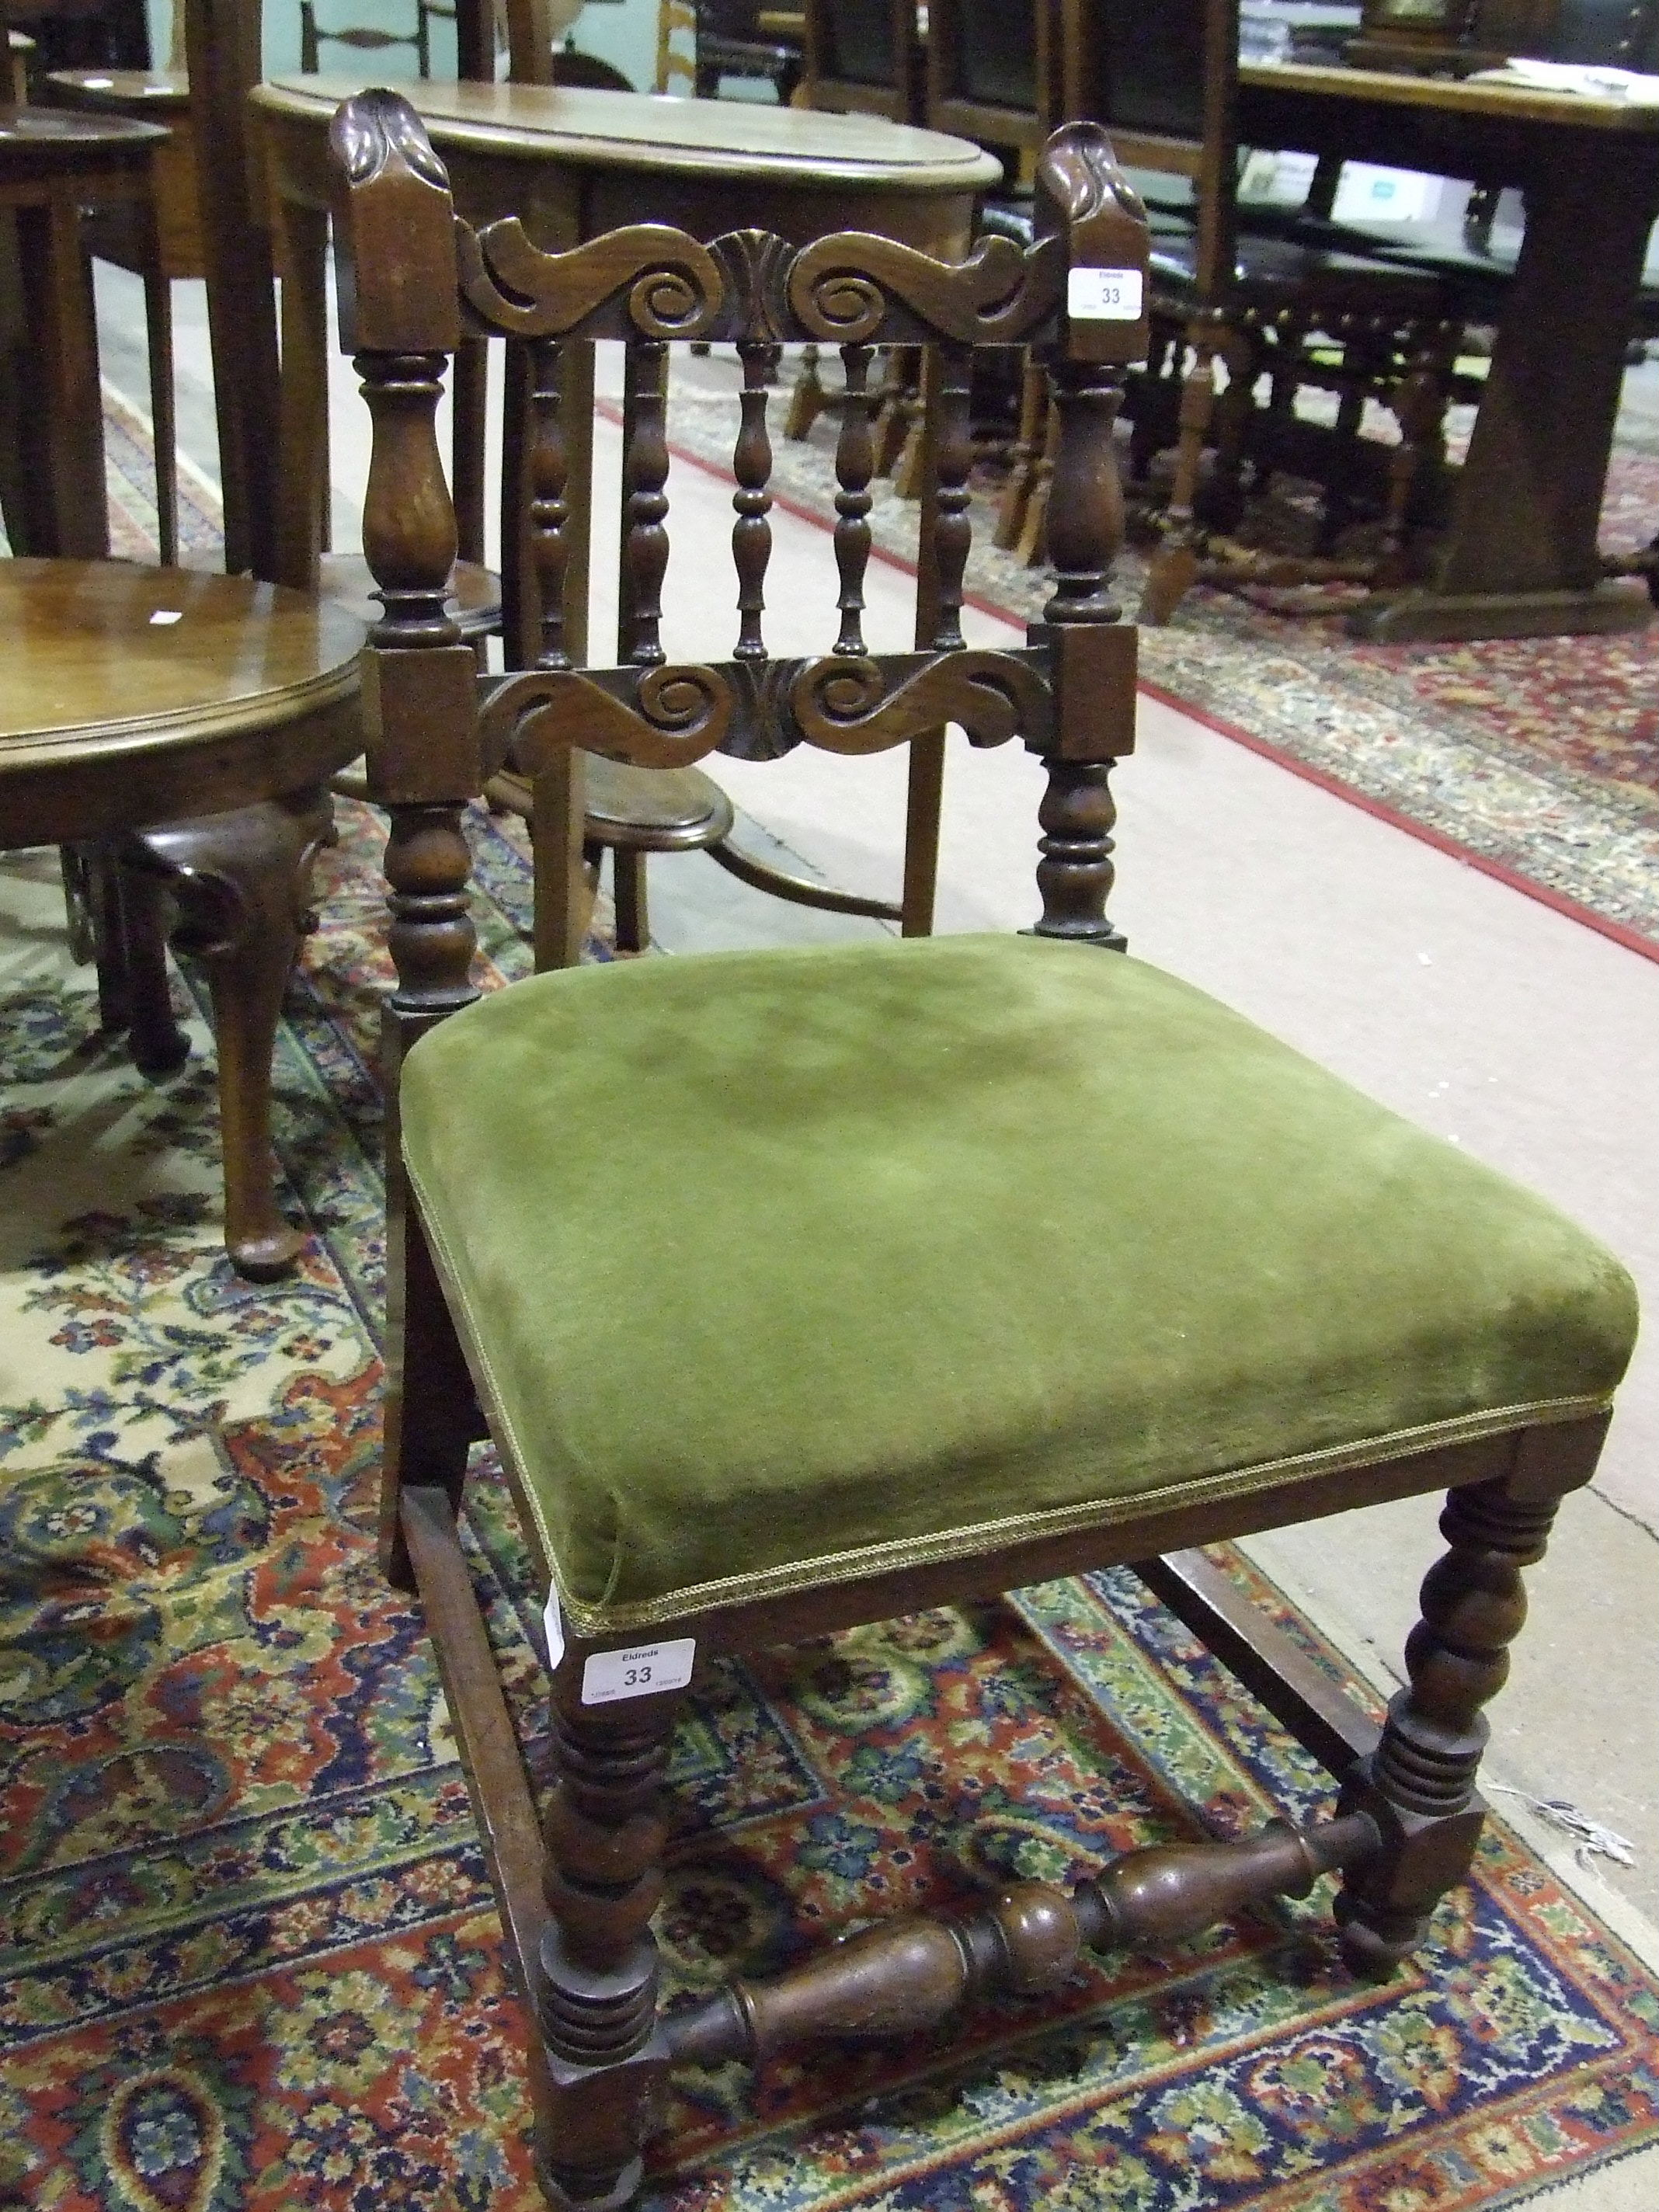 Lot 33 - An upholstered-seat oak-framed nursing chair with carved spindle back and turned front legs.